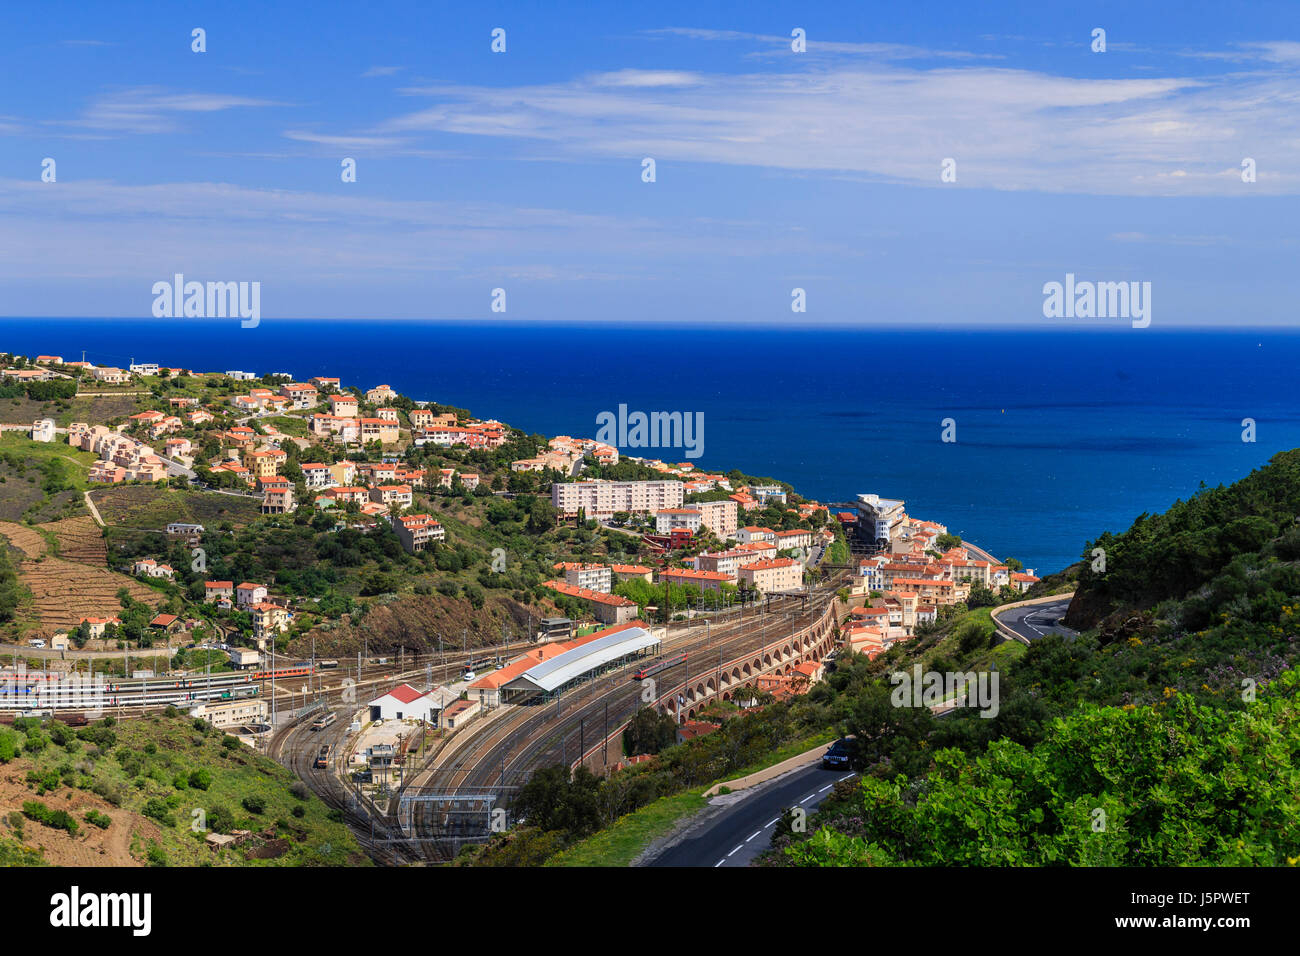 France, Pyrenees Orientales, Cerbere, the town and the rail Station - Stock Image